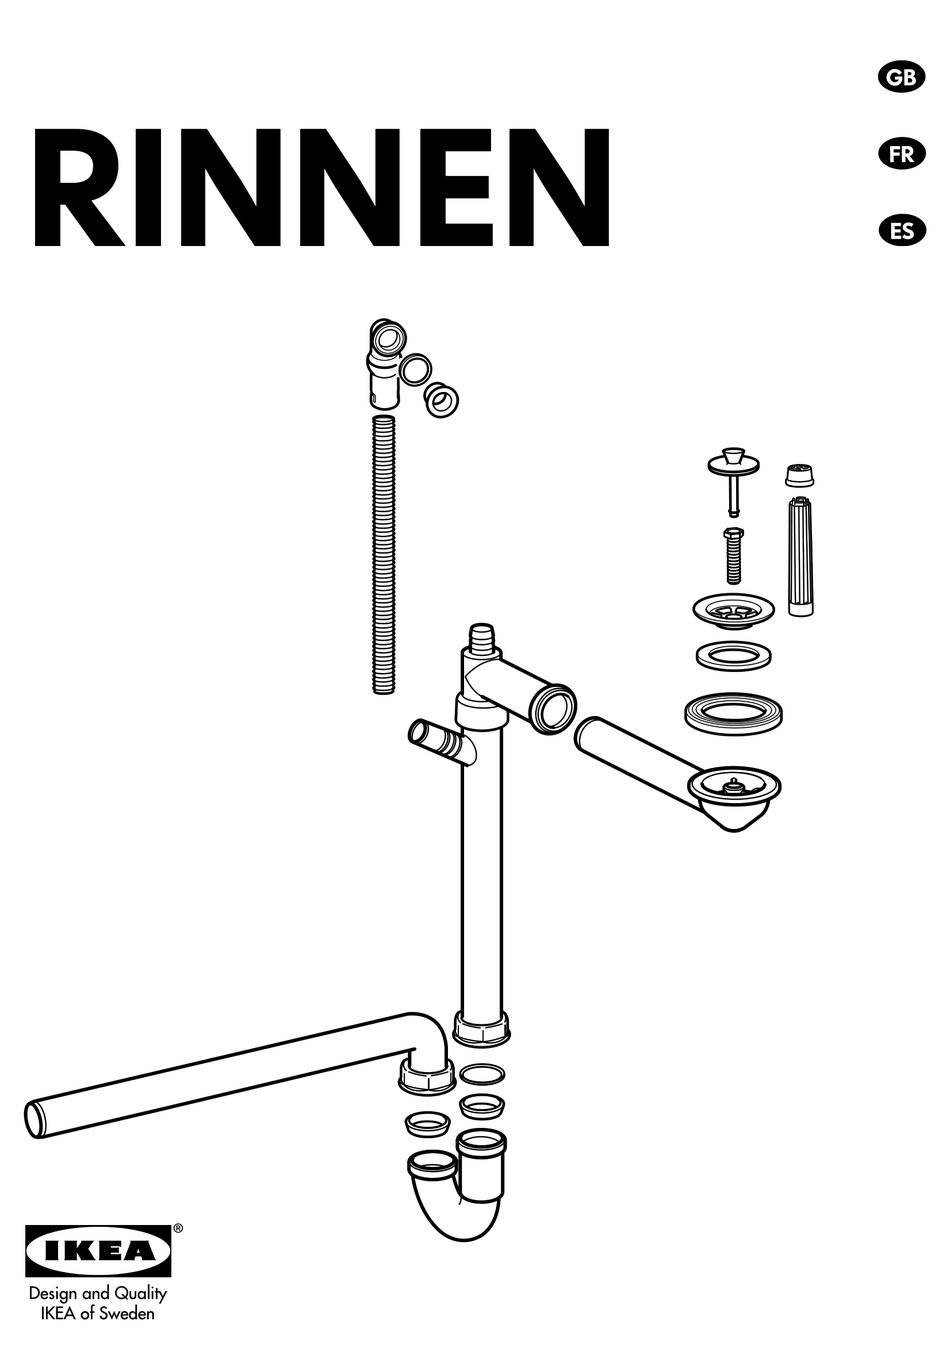 ikea rinnen assembly instructions